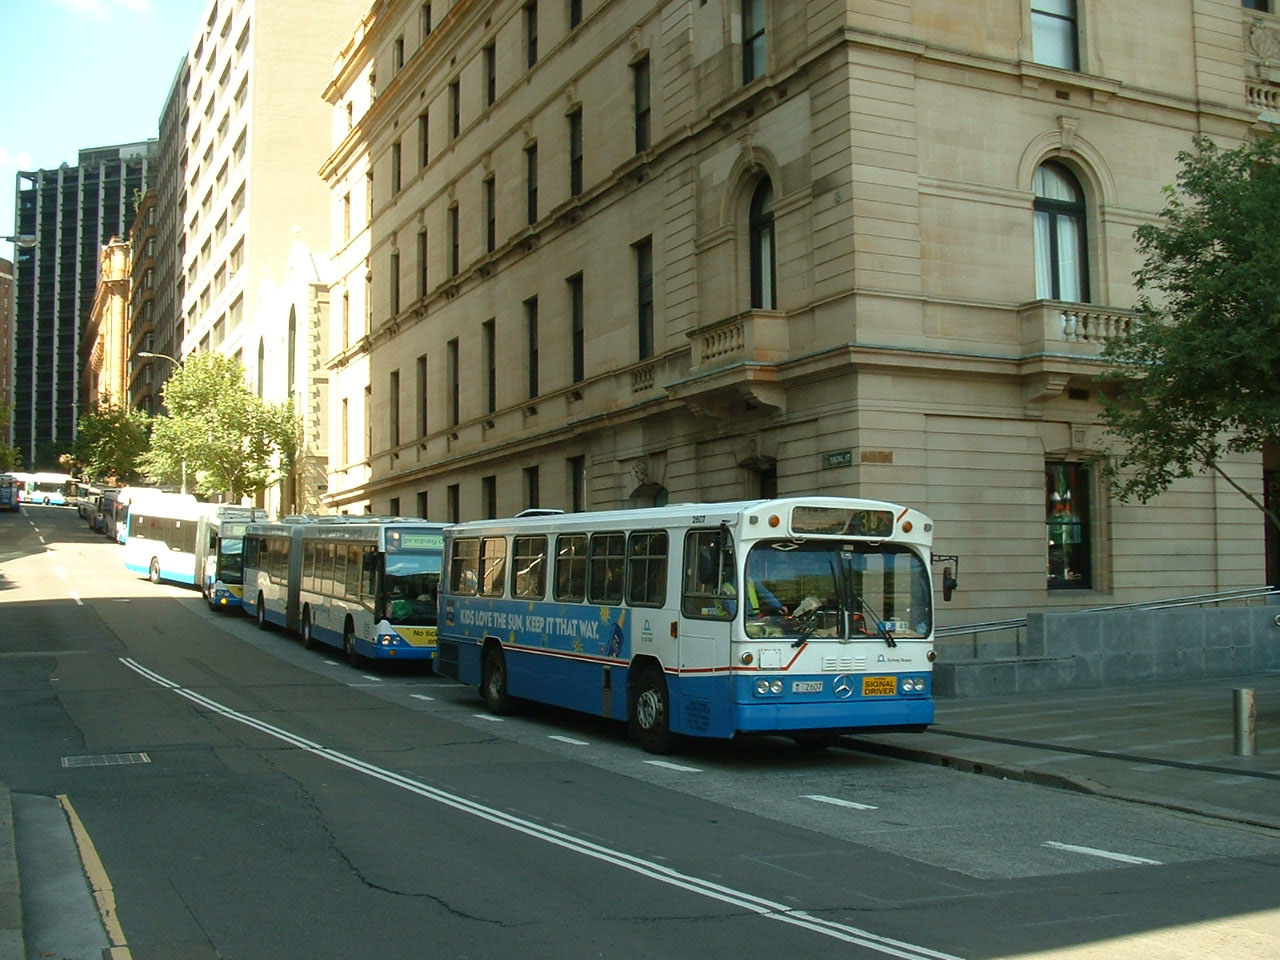 Sydney buses showbus international photo gallery australia for Mercedes benz sydney service